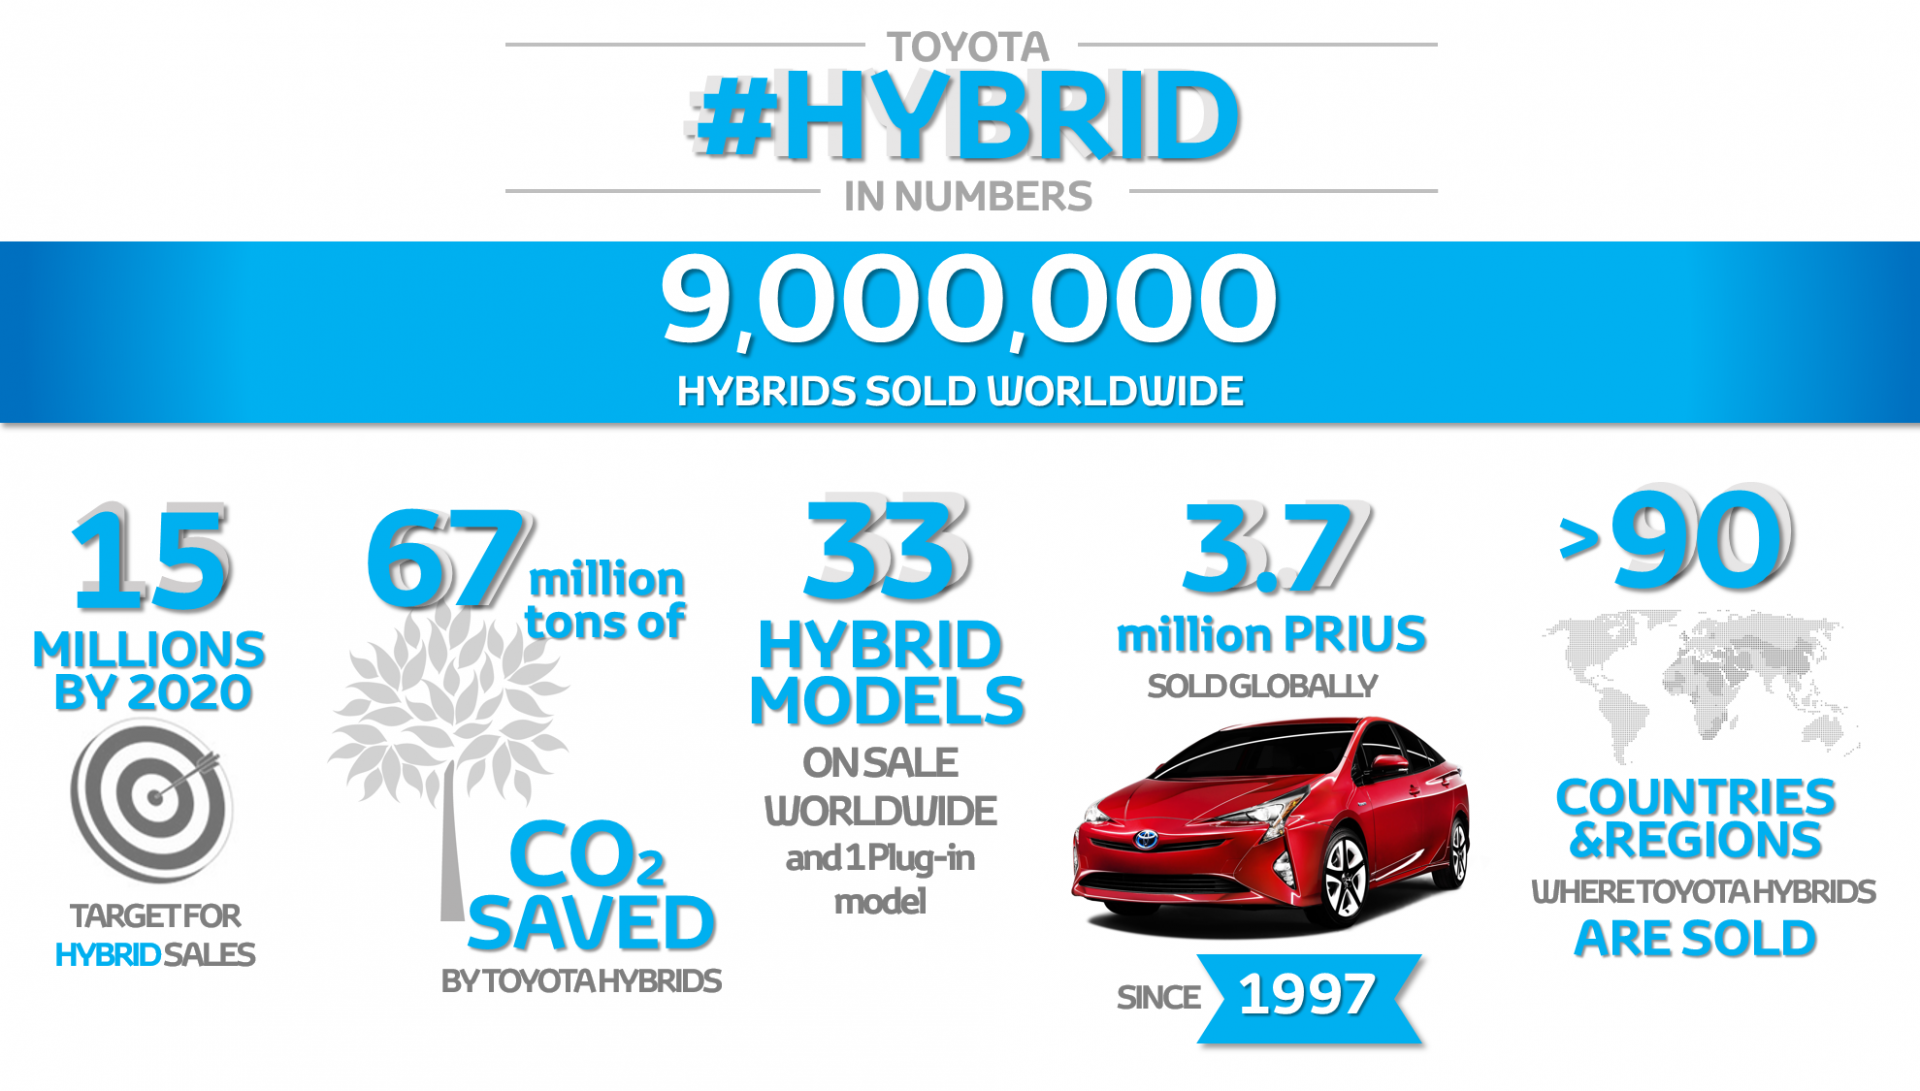 9 million hybrids infographic